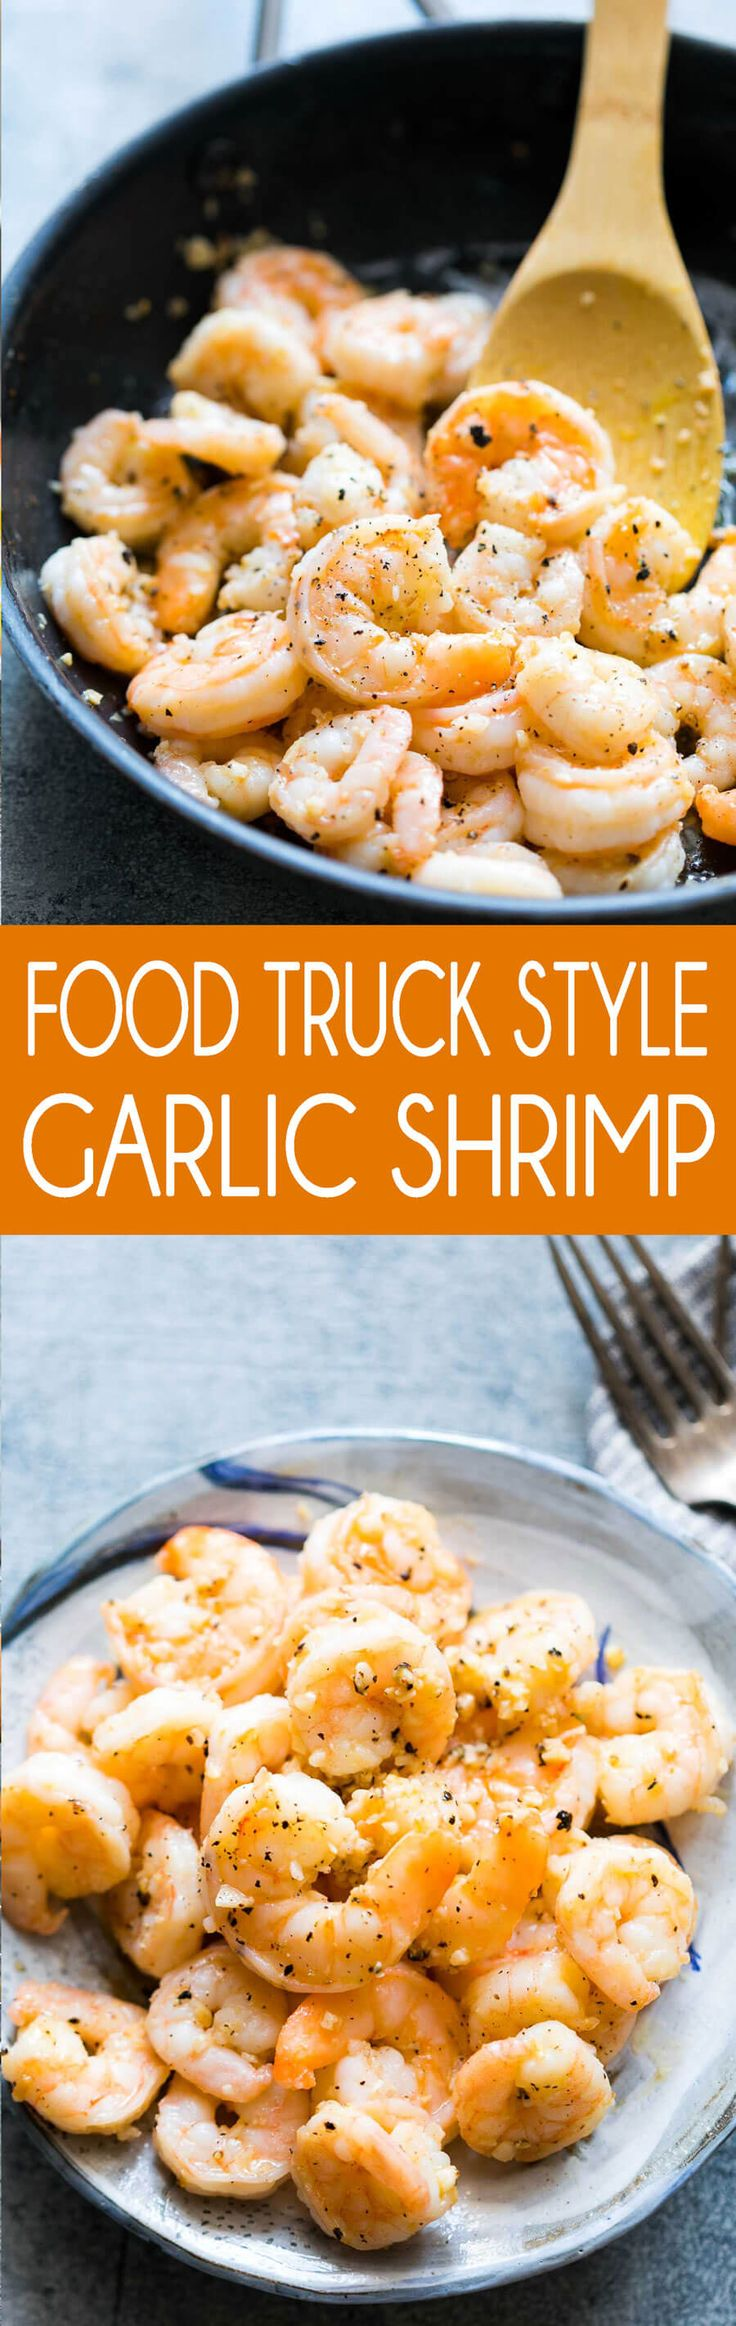 Tasty garlic shrimp, cooked food truck style with tons of garlic and butter, to make these jumbo shrimp juicy and delicious.